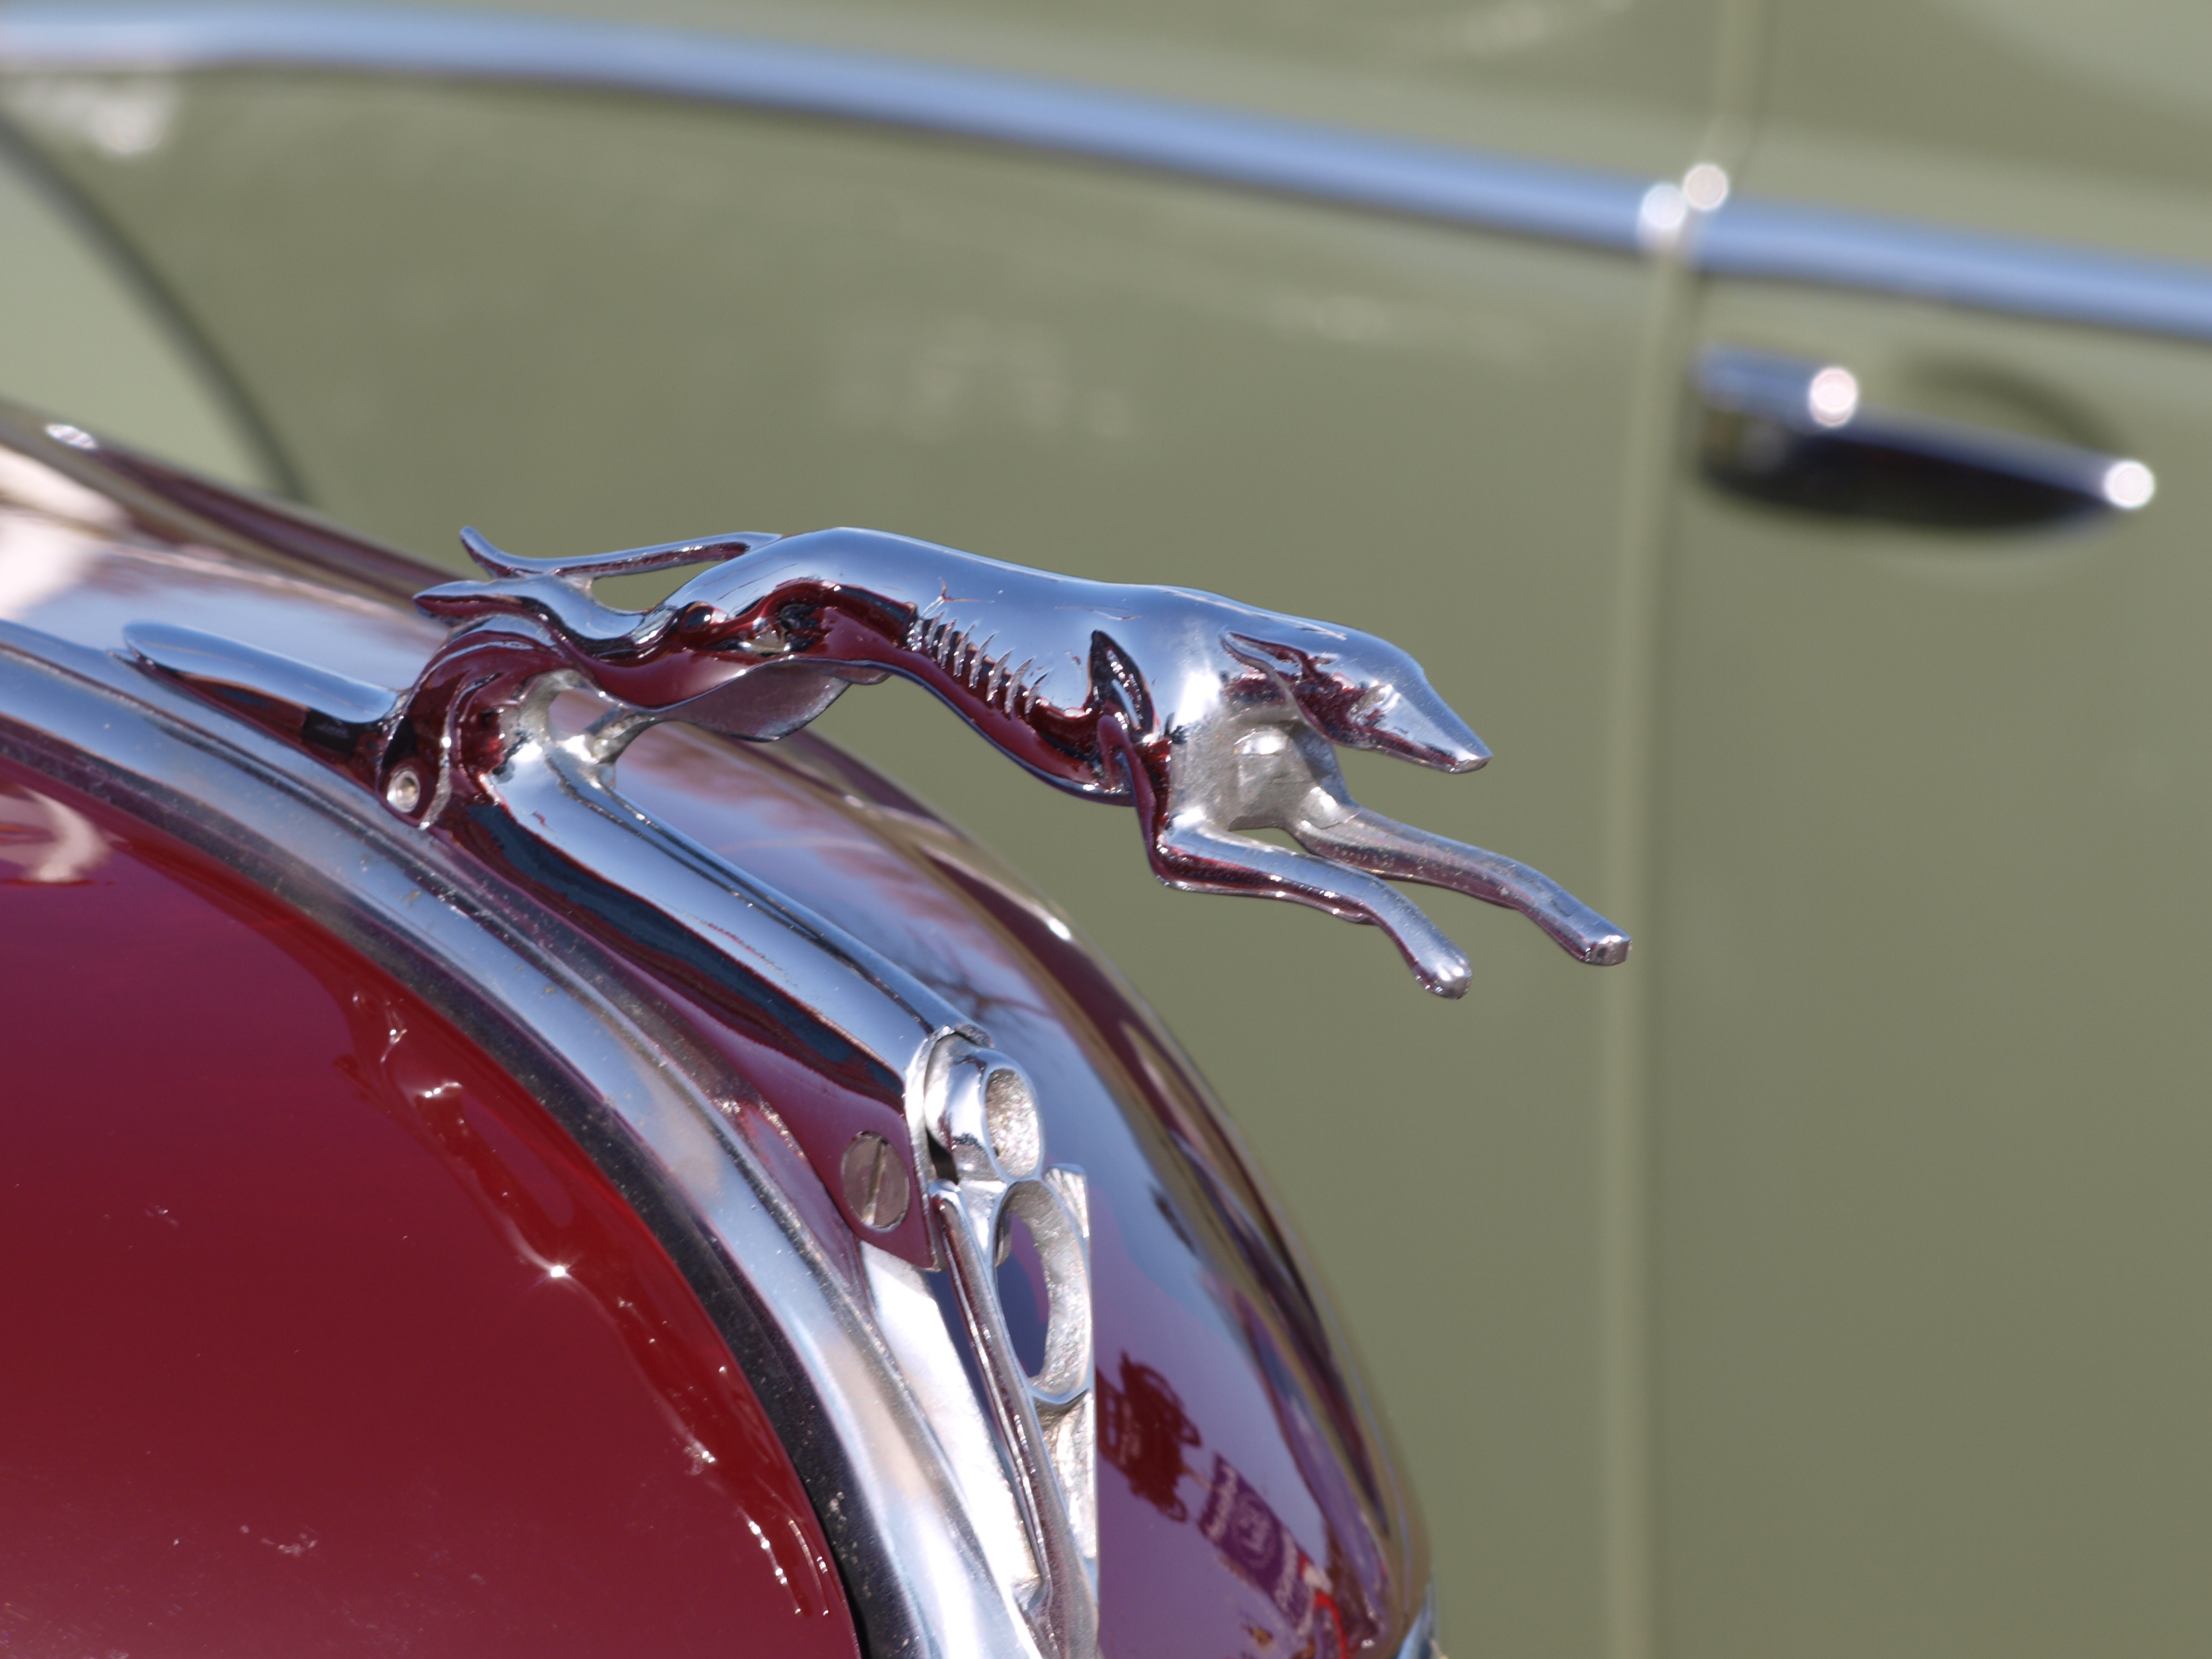 File The Classic Greyhound Hood Ornament From A 1930s Ford